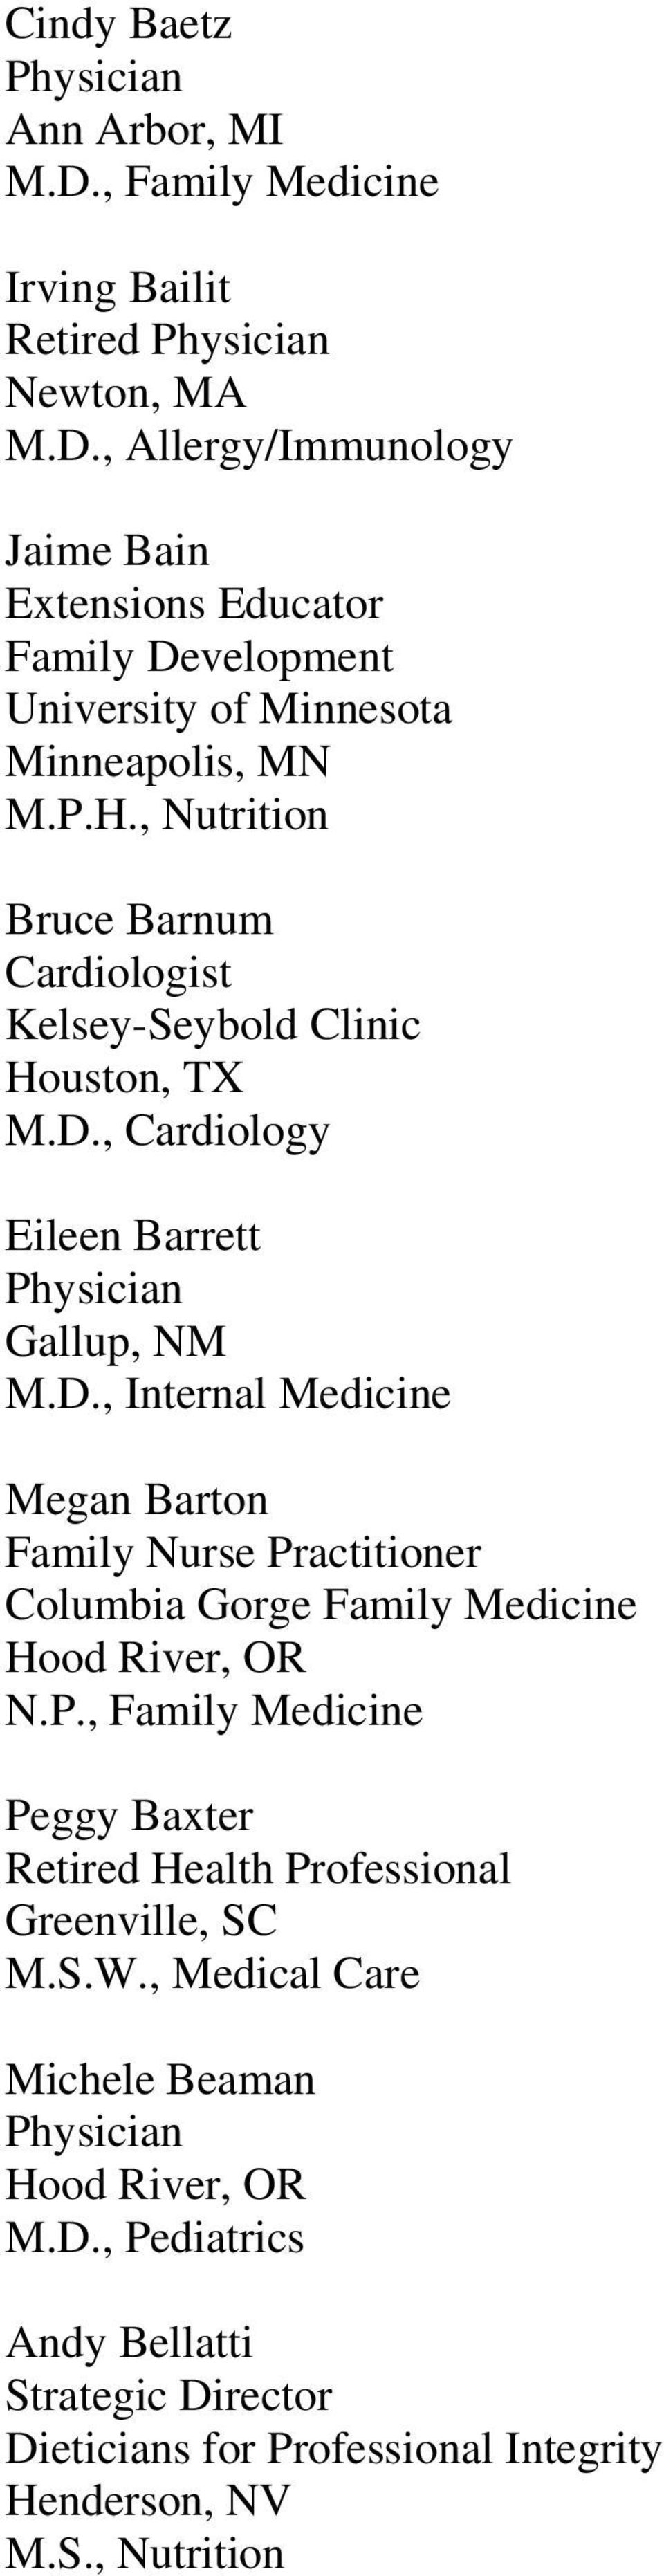 , Cardiology Eileen Barrett Gallup, NM M.D., Internal Medicine Megan Barton Family Nurse Practitioner Columbia Gorge Family Medicine Hood River, OR N.P., Family Medicine Peggy Baxter Retired Health Professional Greenville, SC M.